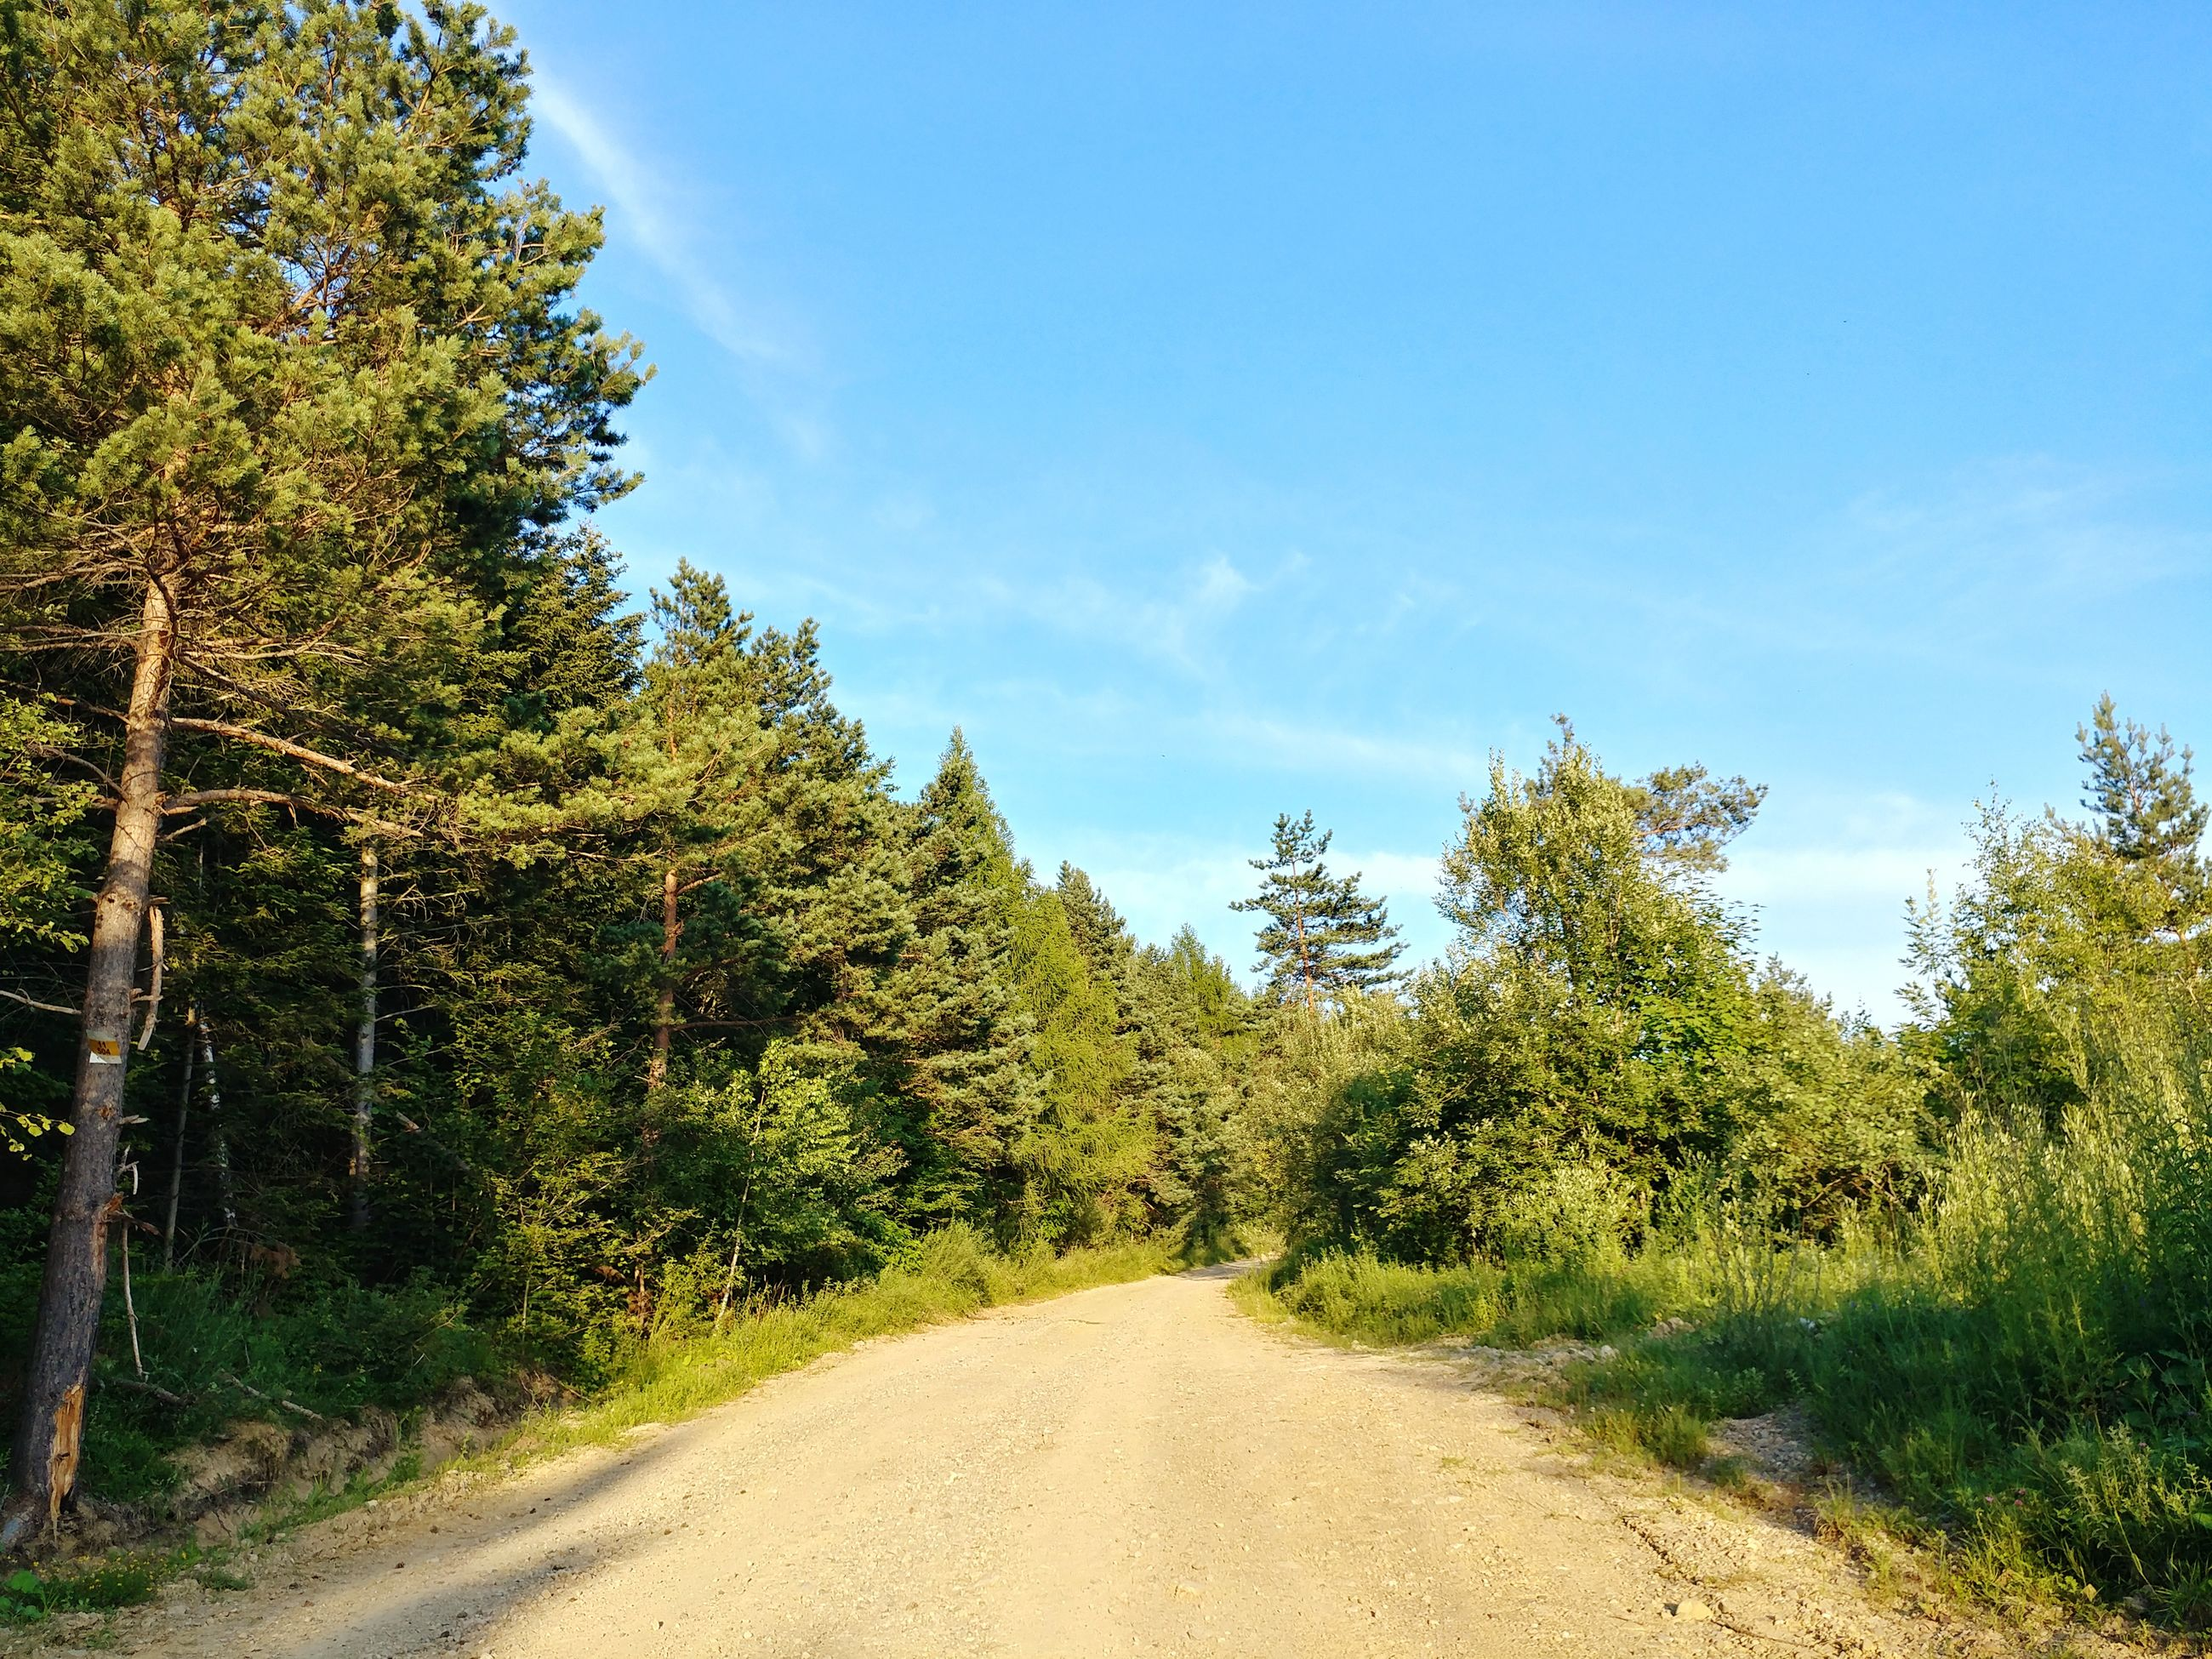 tree, plant, road, sky, the way forward, direction, transportation, beauty in nature, nature, growth, non-urban scene, day, tranquility, green color, diminishing perspective, no people, tranquil scene, cloud - sky, sunlight, dirt, outdoors